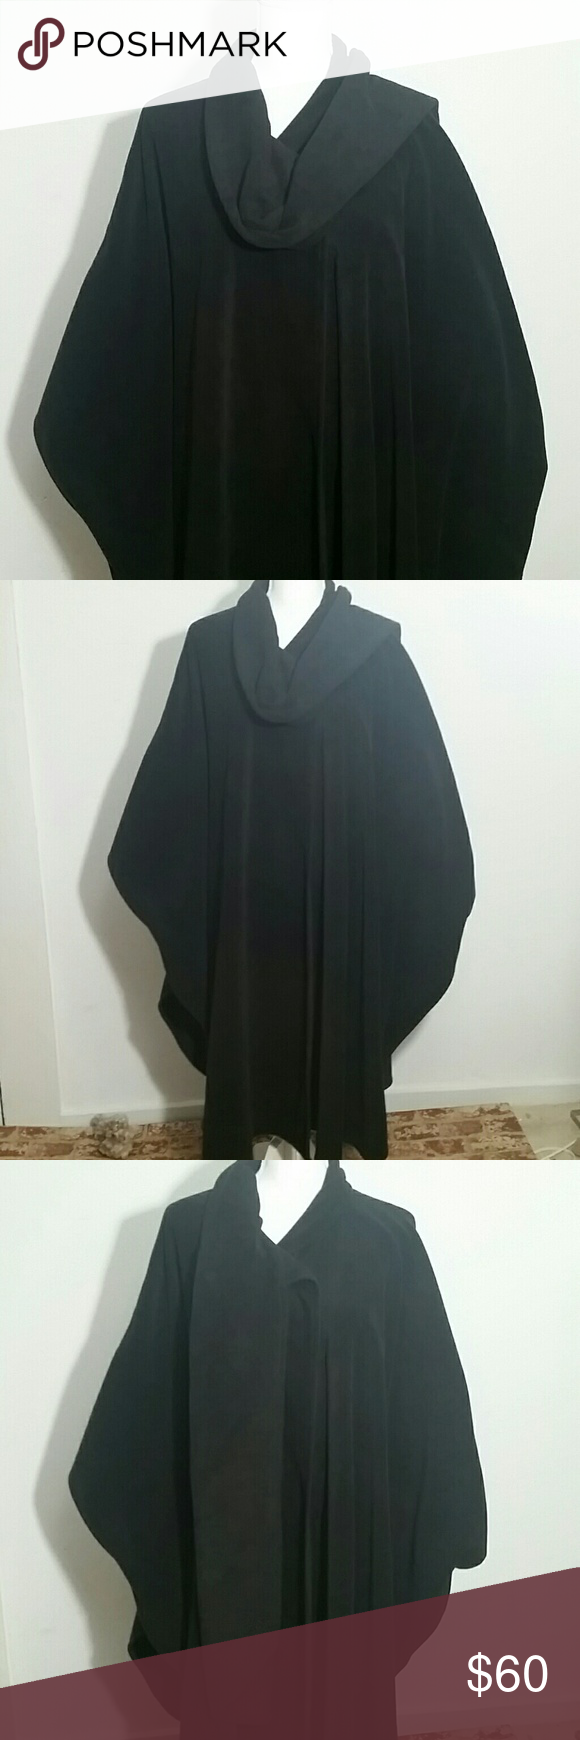 Large Black Cape With Attached Scarf Black Cape Jackets For Women Large Black